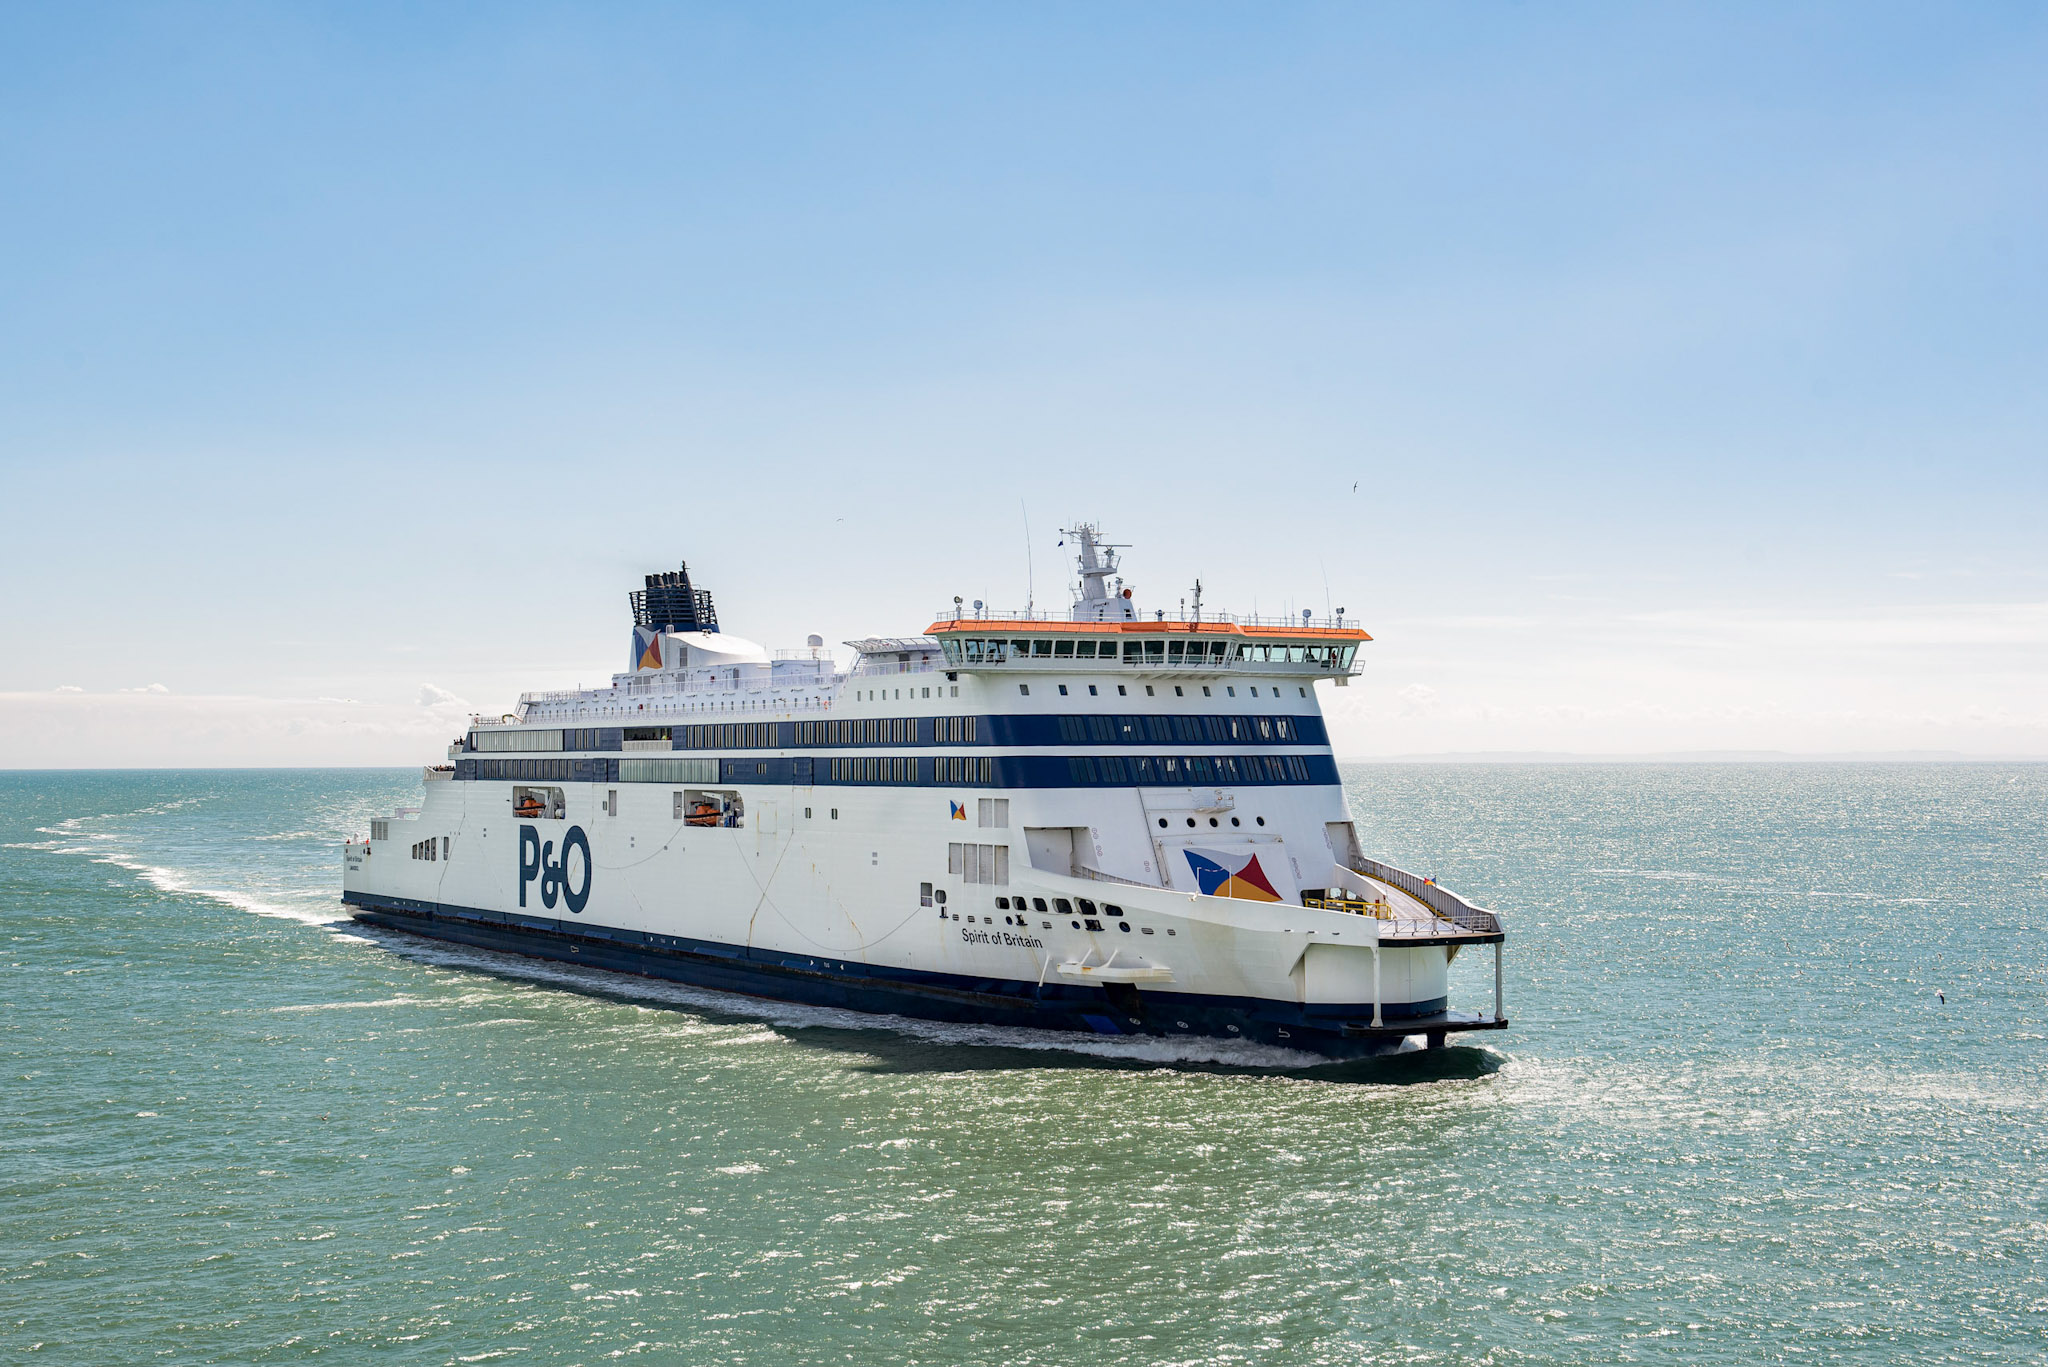 P&O and DFDS agree to share space on Dover-Calais route